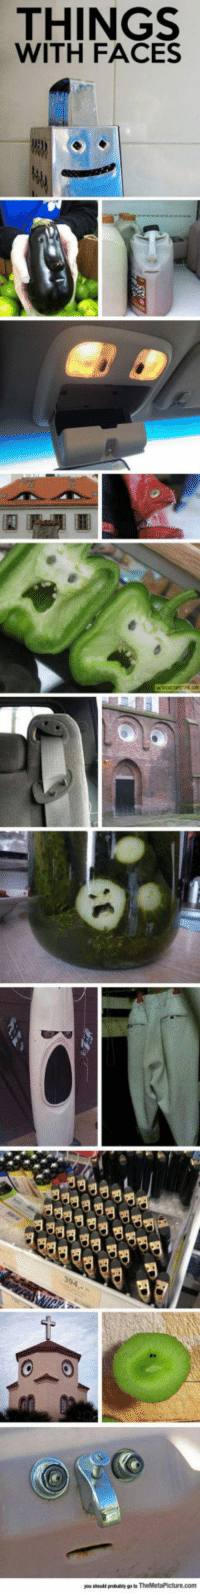 Tumblr, Blog, and Com: THINGS  WITH FACES epicjohndoe:  Pareidolia: Things That Have Faces